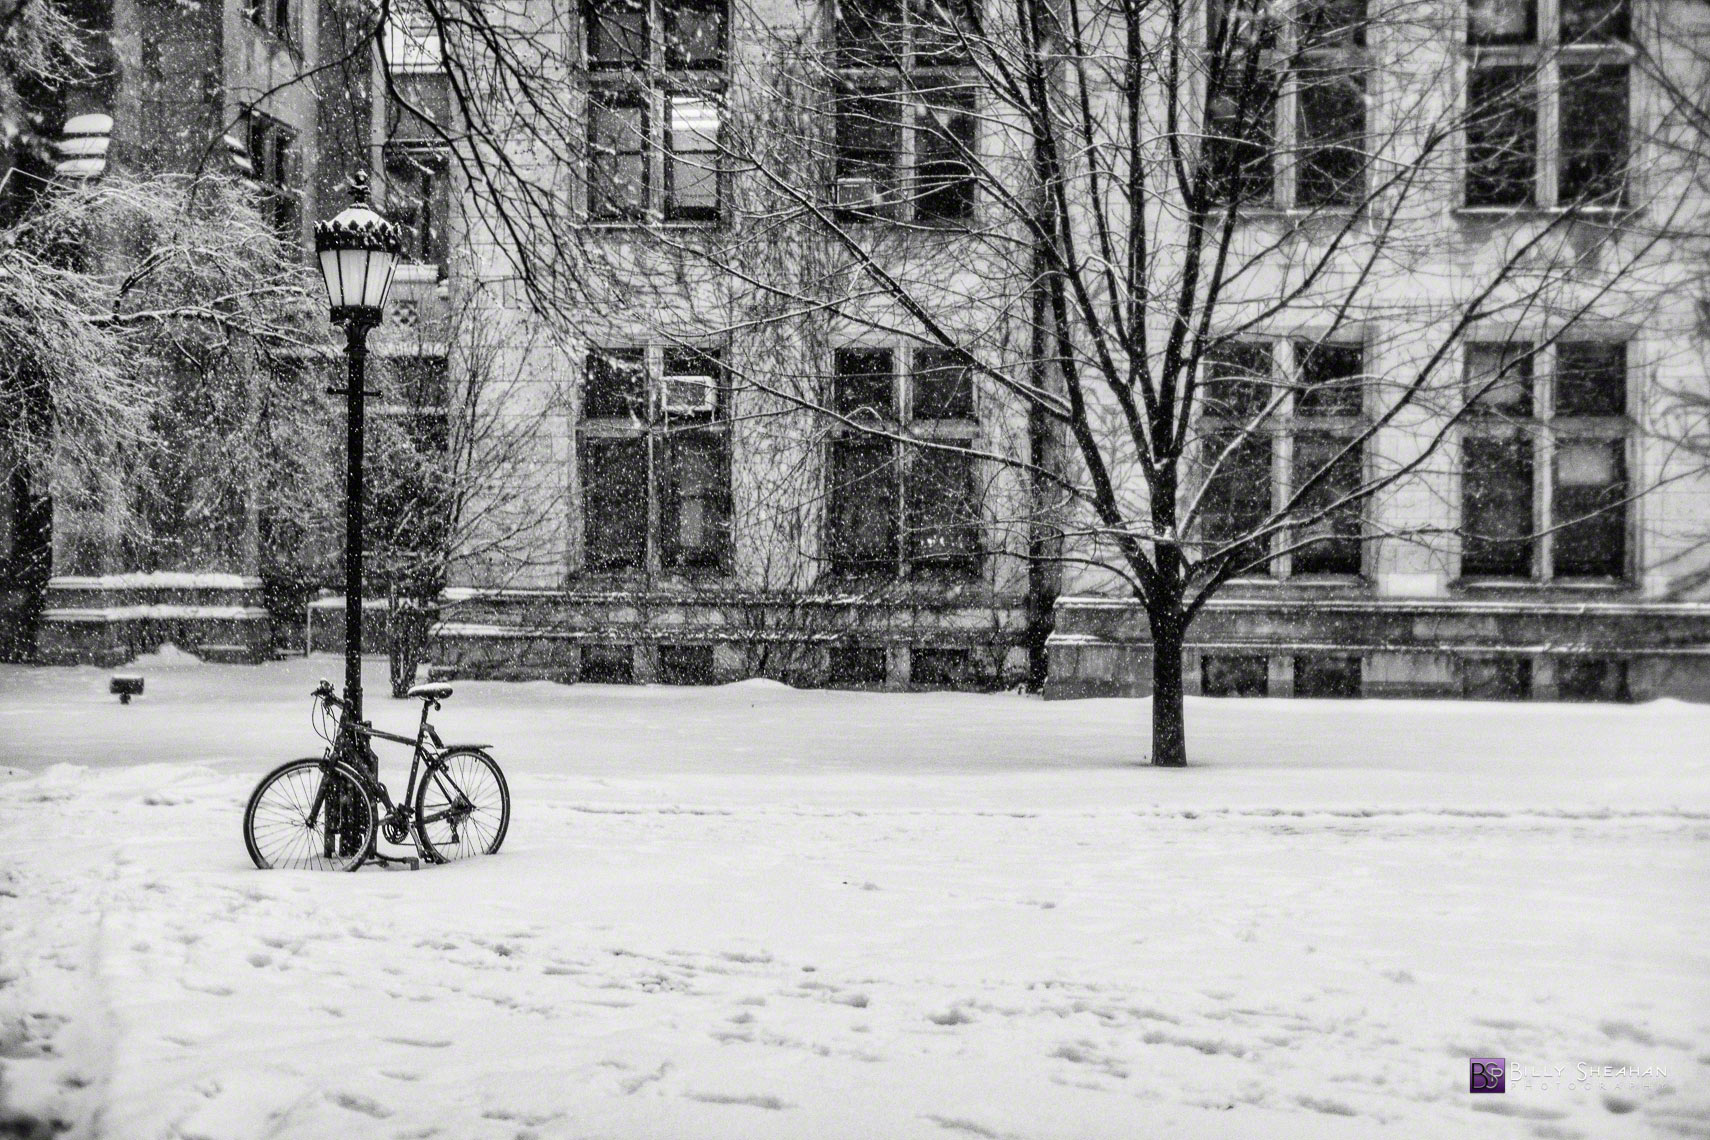 Snowy Bicycle and Lamp Post University of Chicago